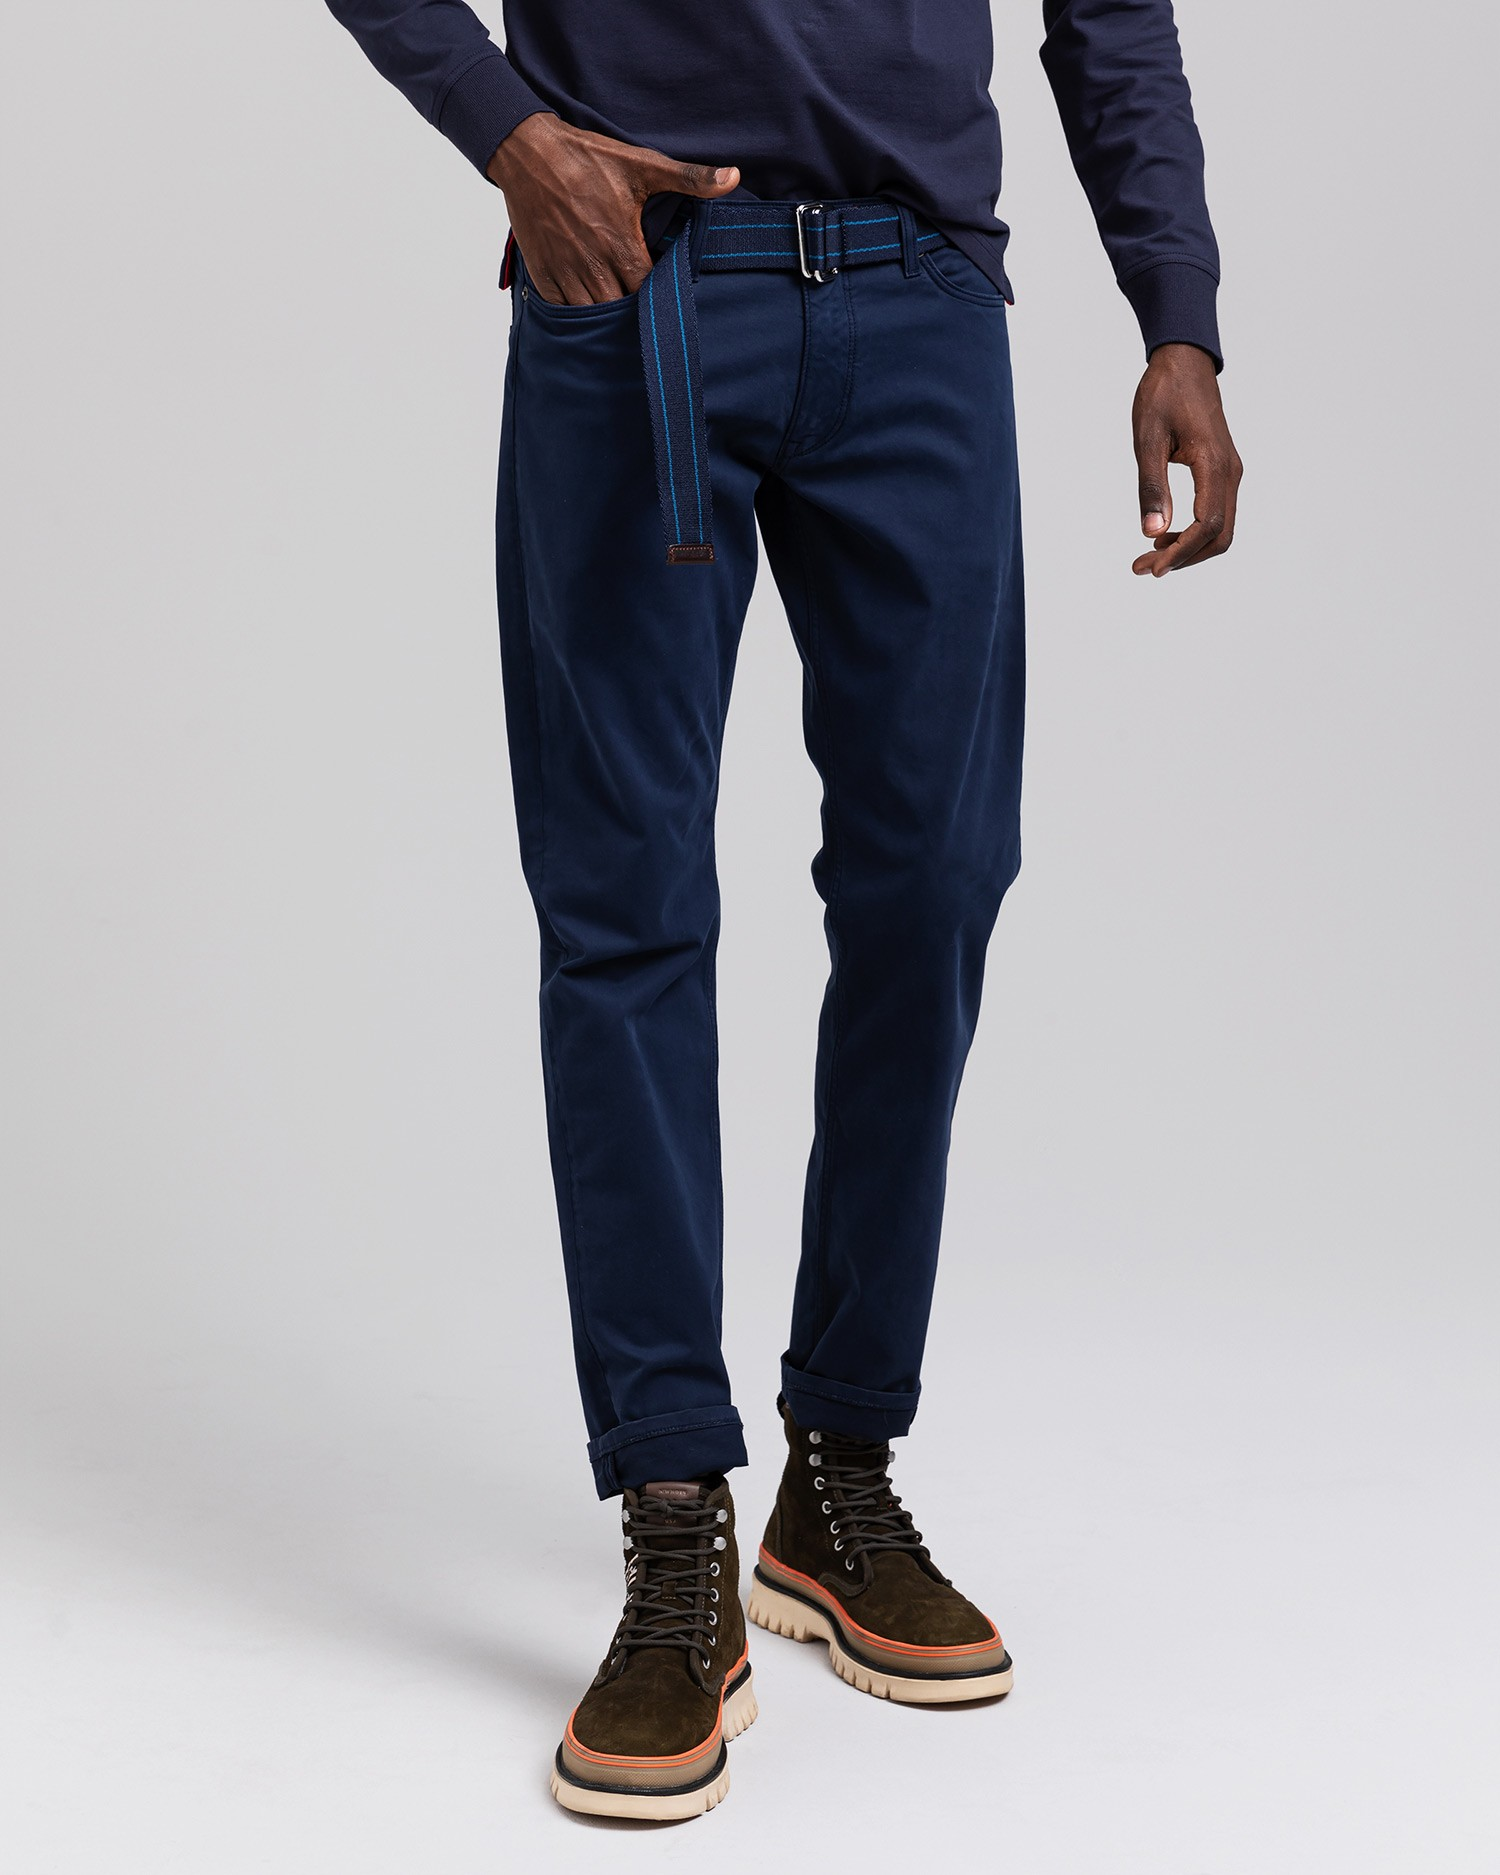 GANT Men's Trousers - 1000193